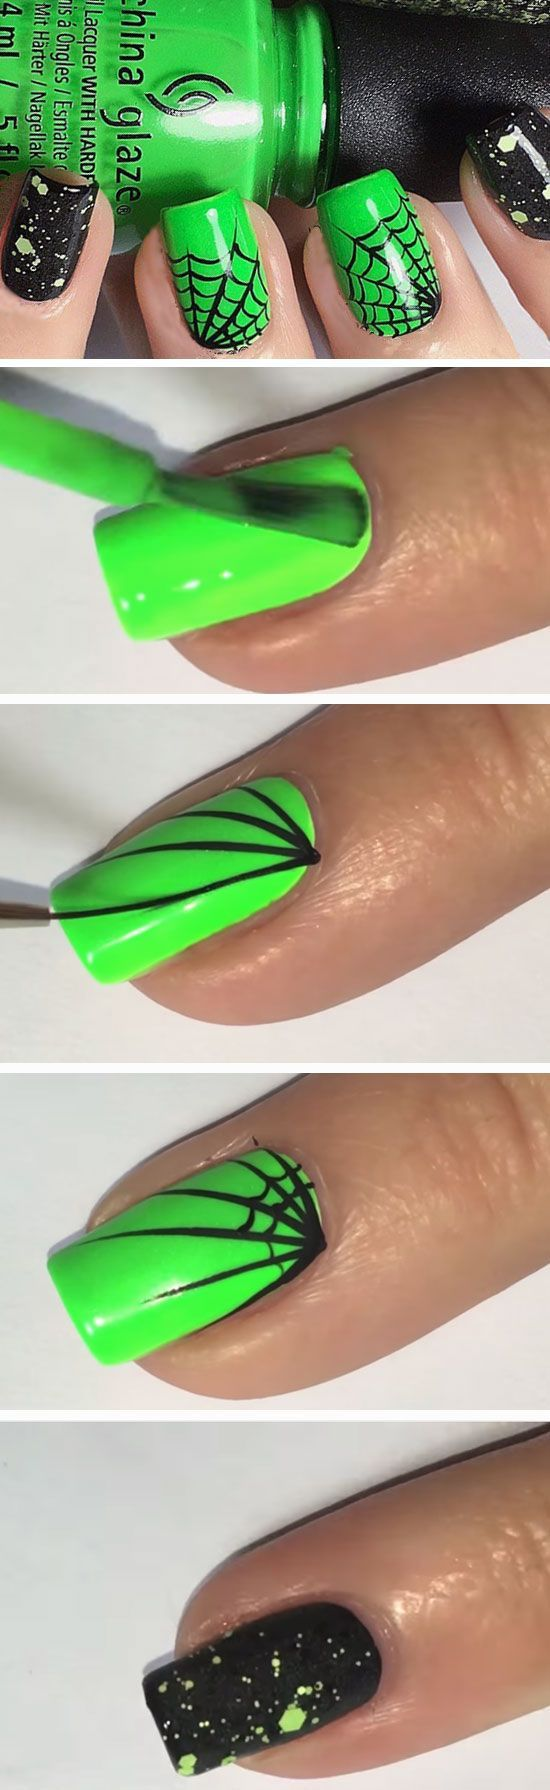 26 Easy Halloween Nail Art Ideas for Teens | Diseños de uñas, Uñas ...